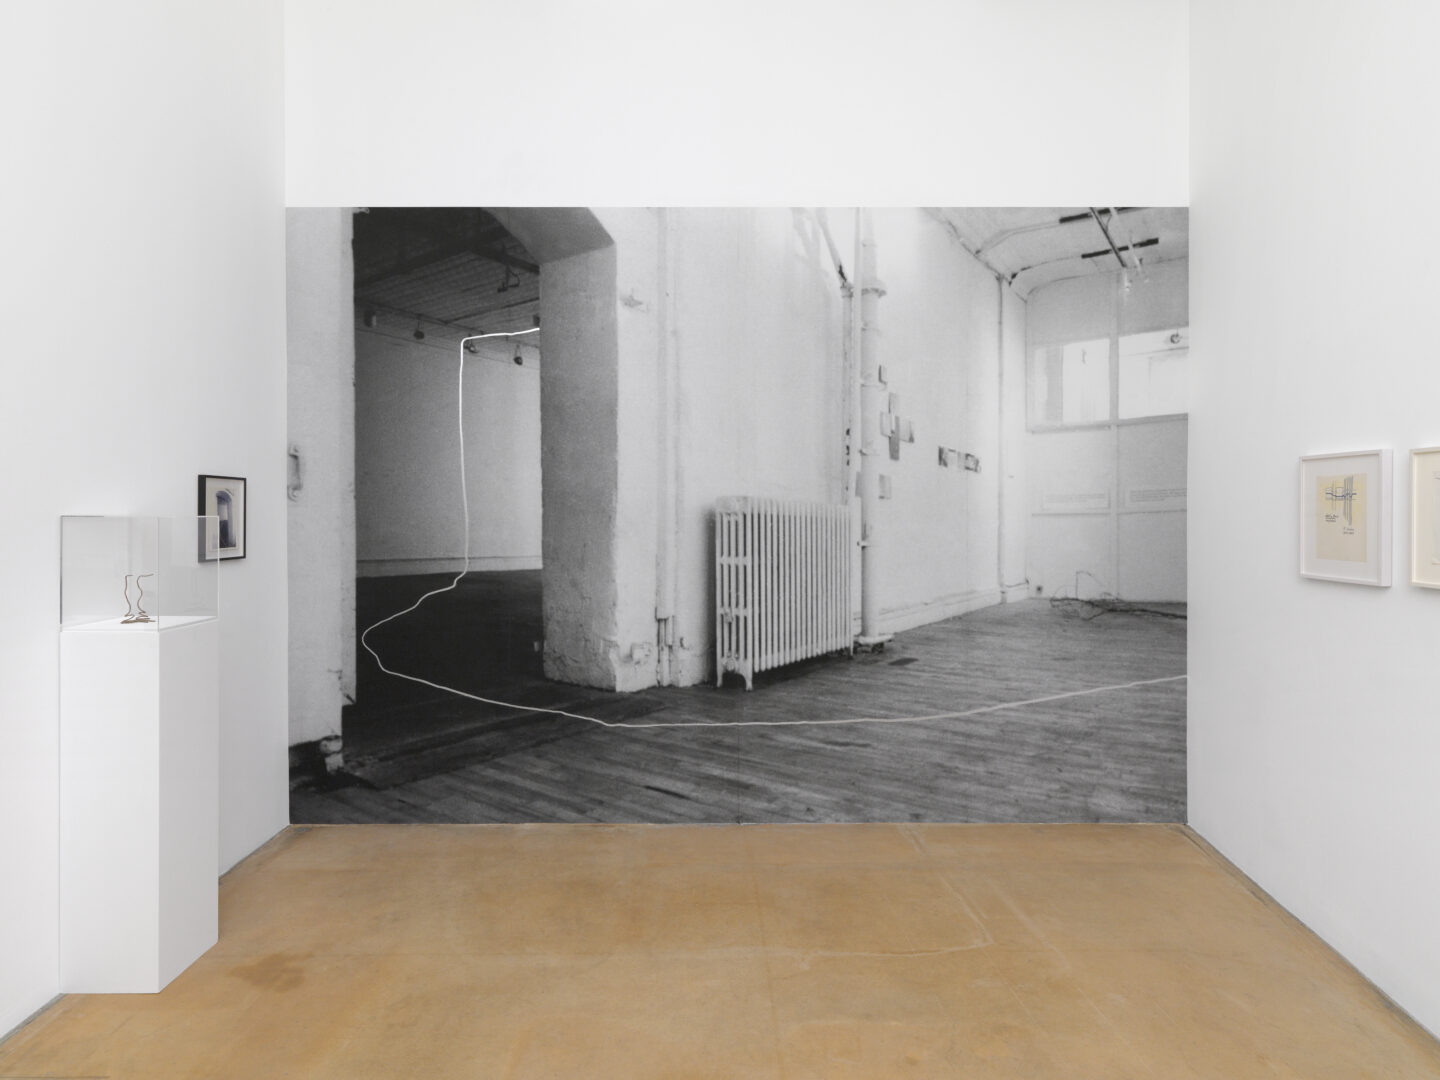 Exhibition View Rosemarie Castoro Soloshow «Time = space between appointment and meeting» at MAMCO, Geneva, 2019 / Photo: Annik Wetter / Courtesy: the artist and MAMCO